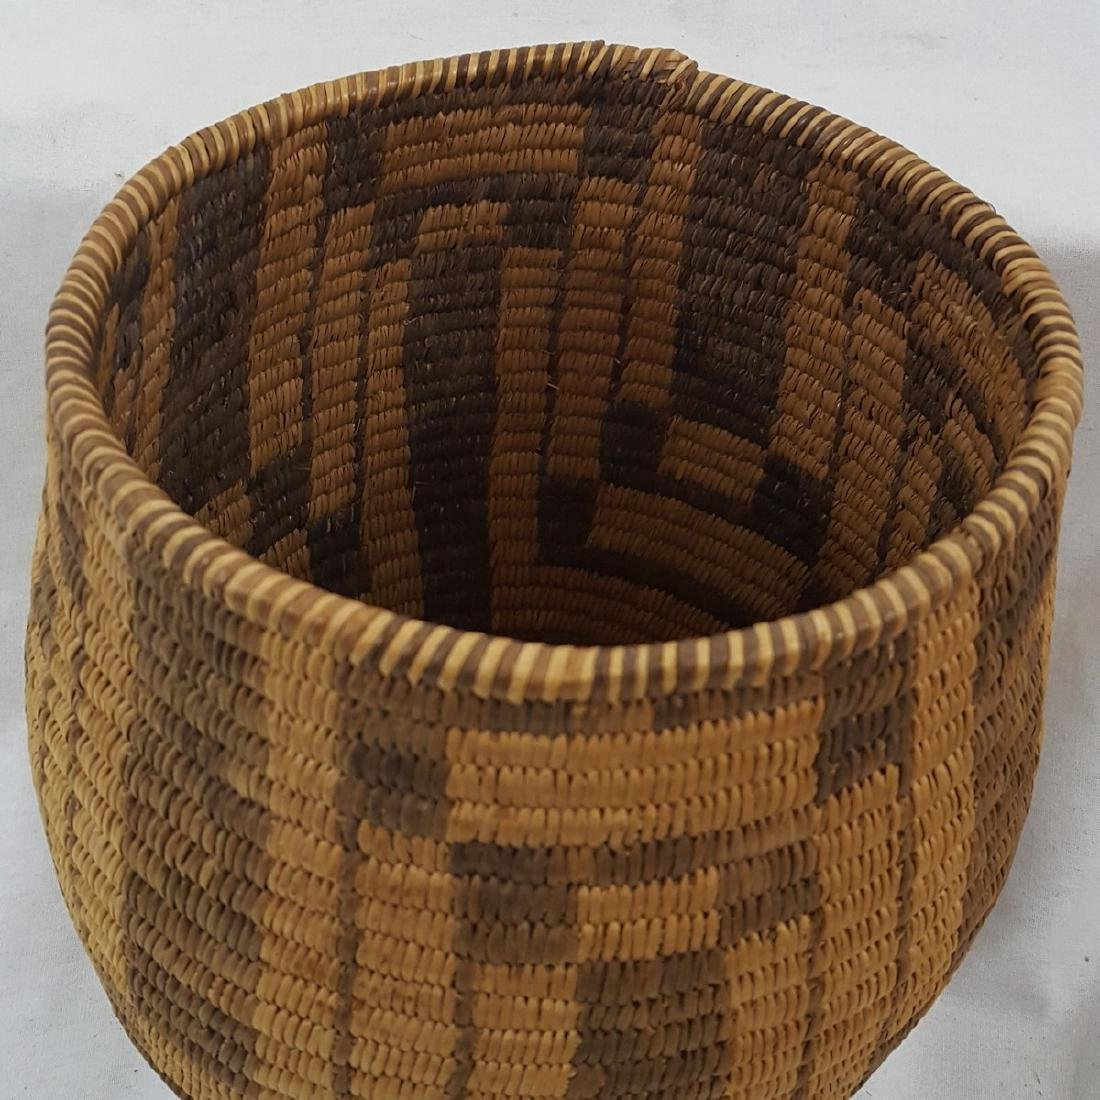 Tall Pima Indian Woven Basket Ca 1920's - 4